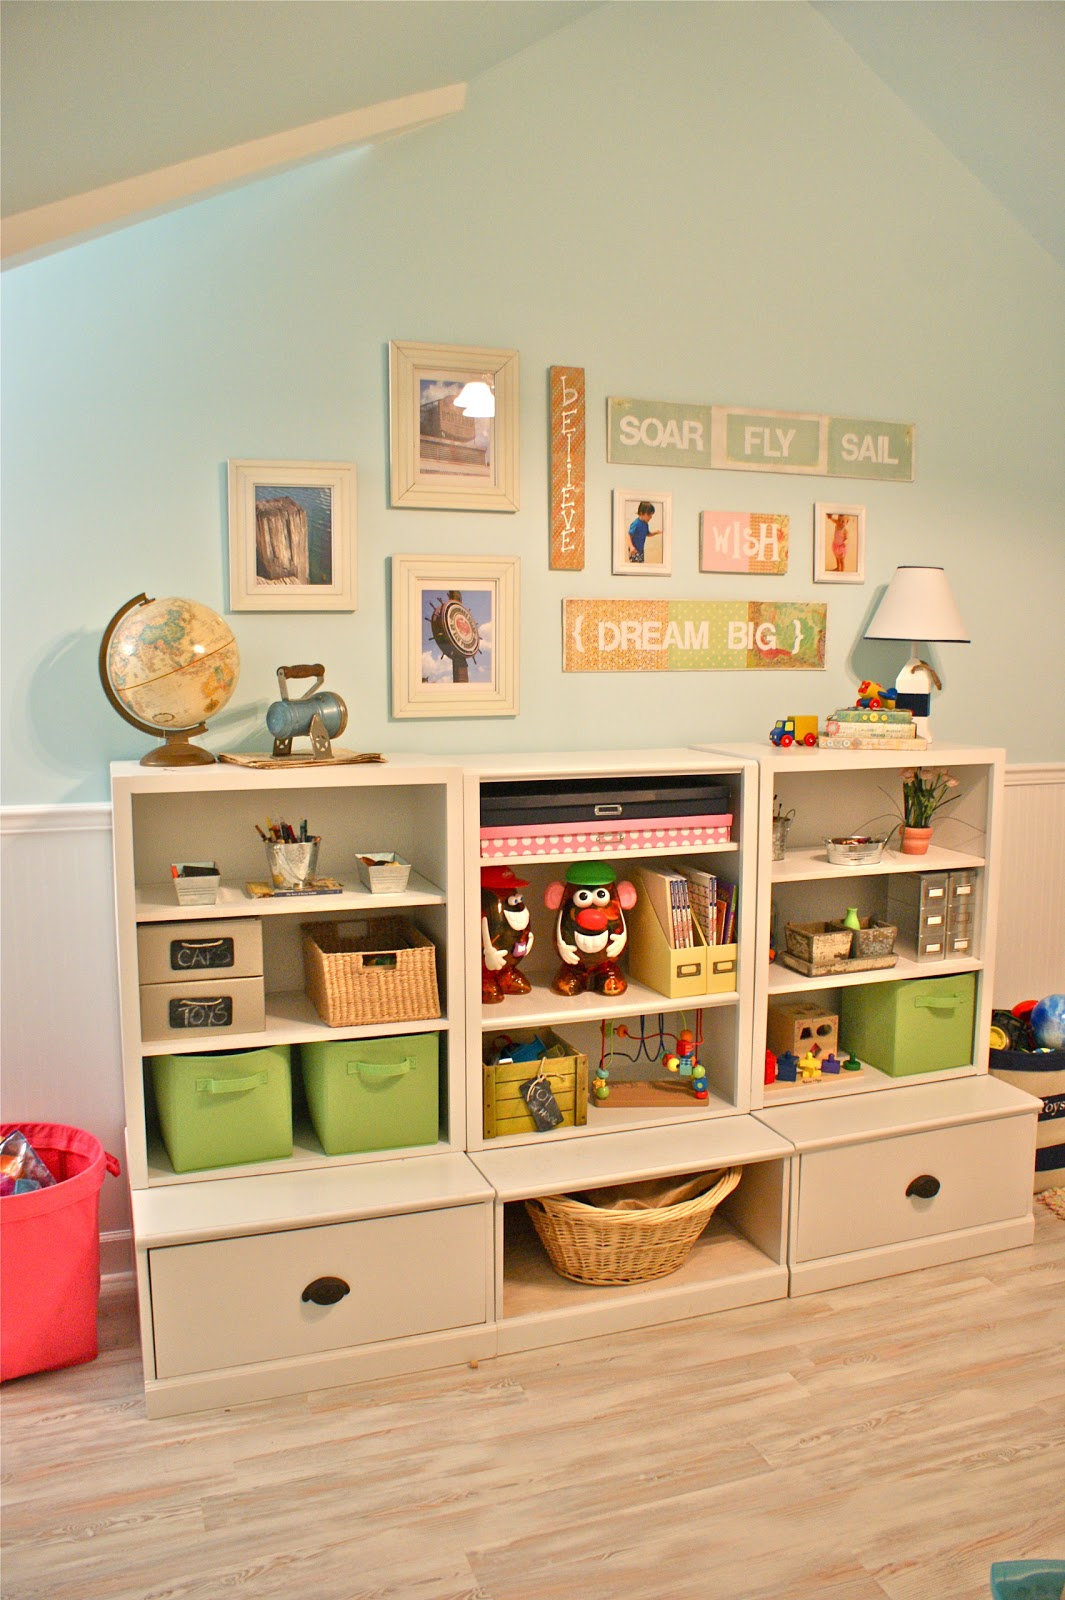 Pottery Barn Art for the Playroom | Perfectly Imperfect™ Blog